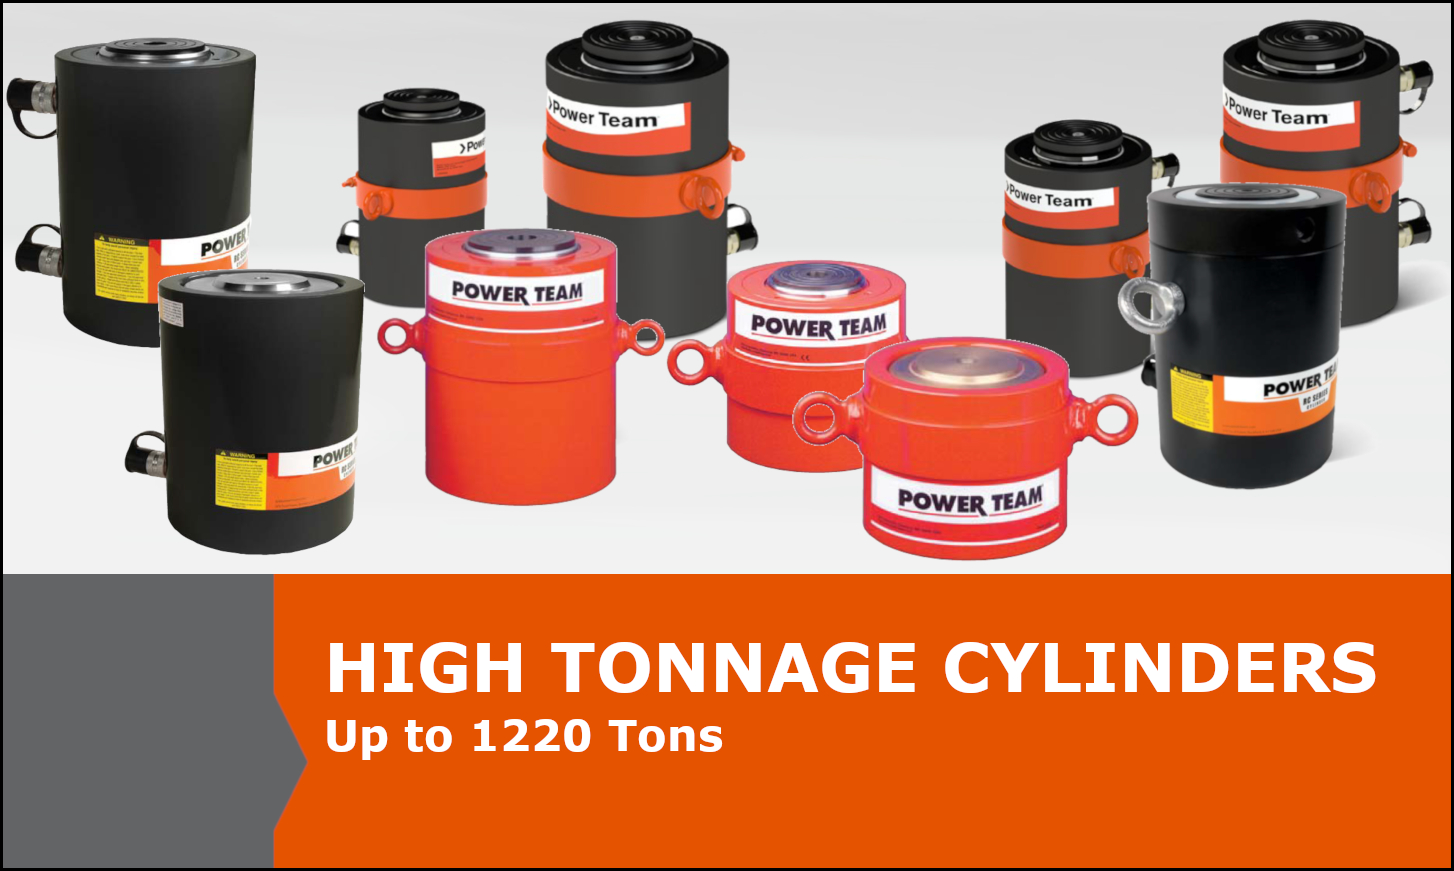 High Tonnage Power Team Cylinders